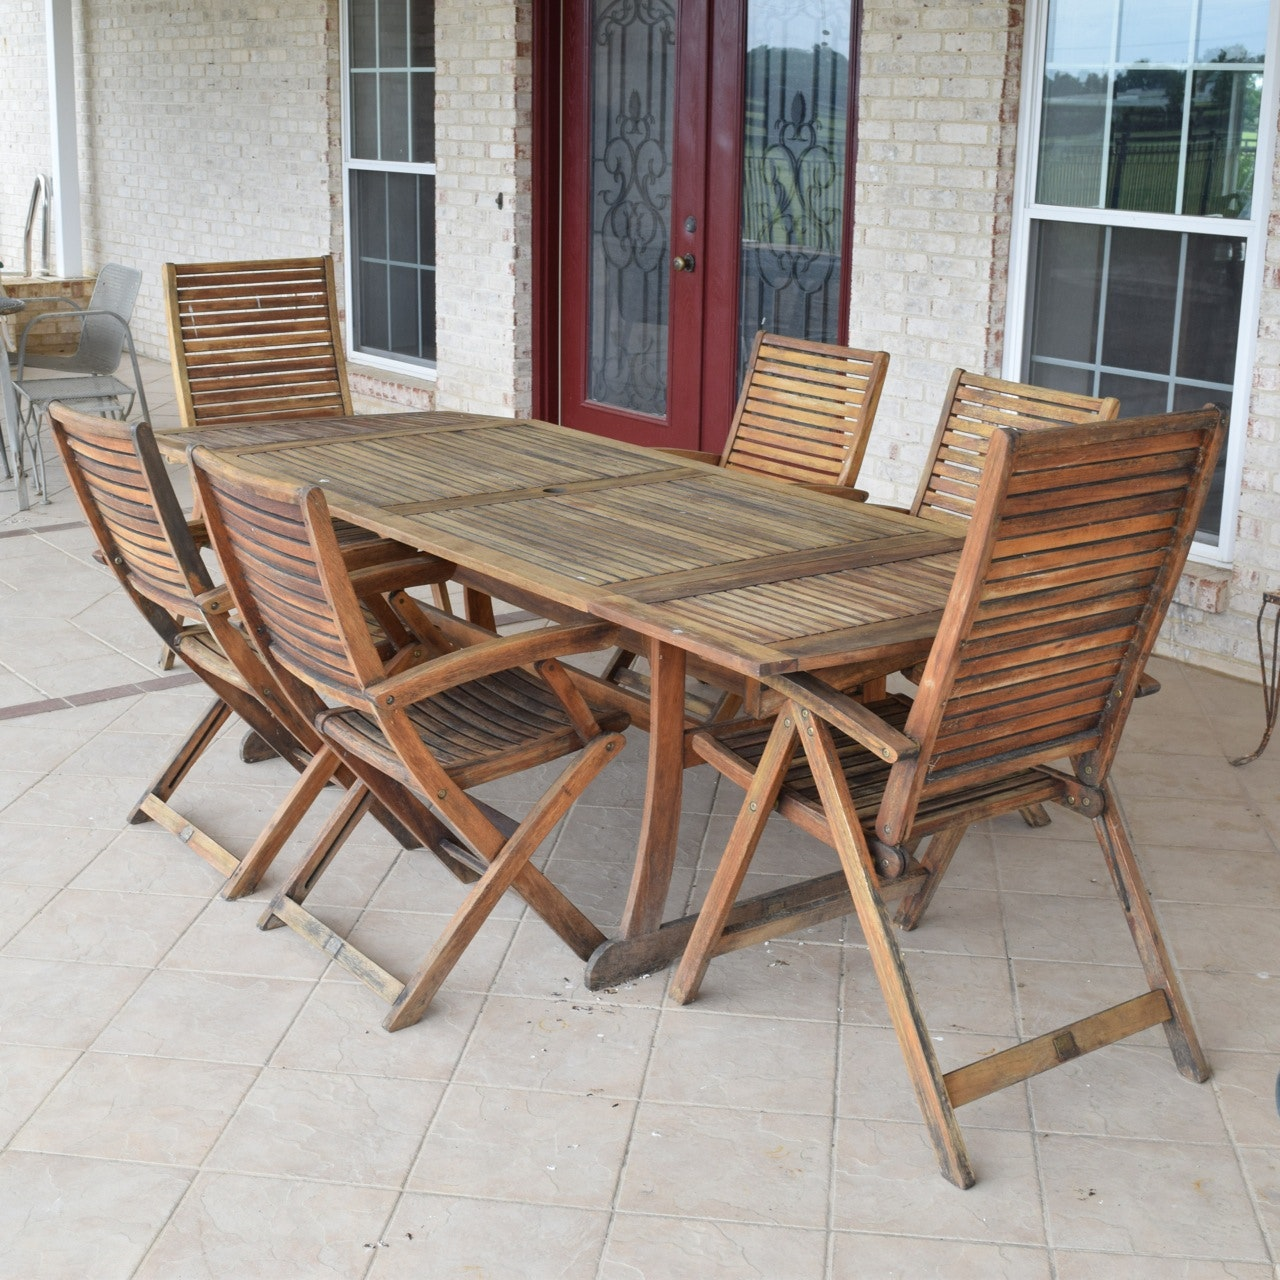 Teak Patio Dining Set By Jutlandia ...